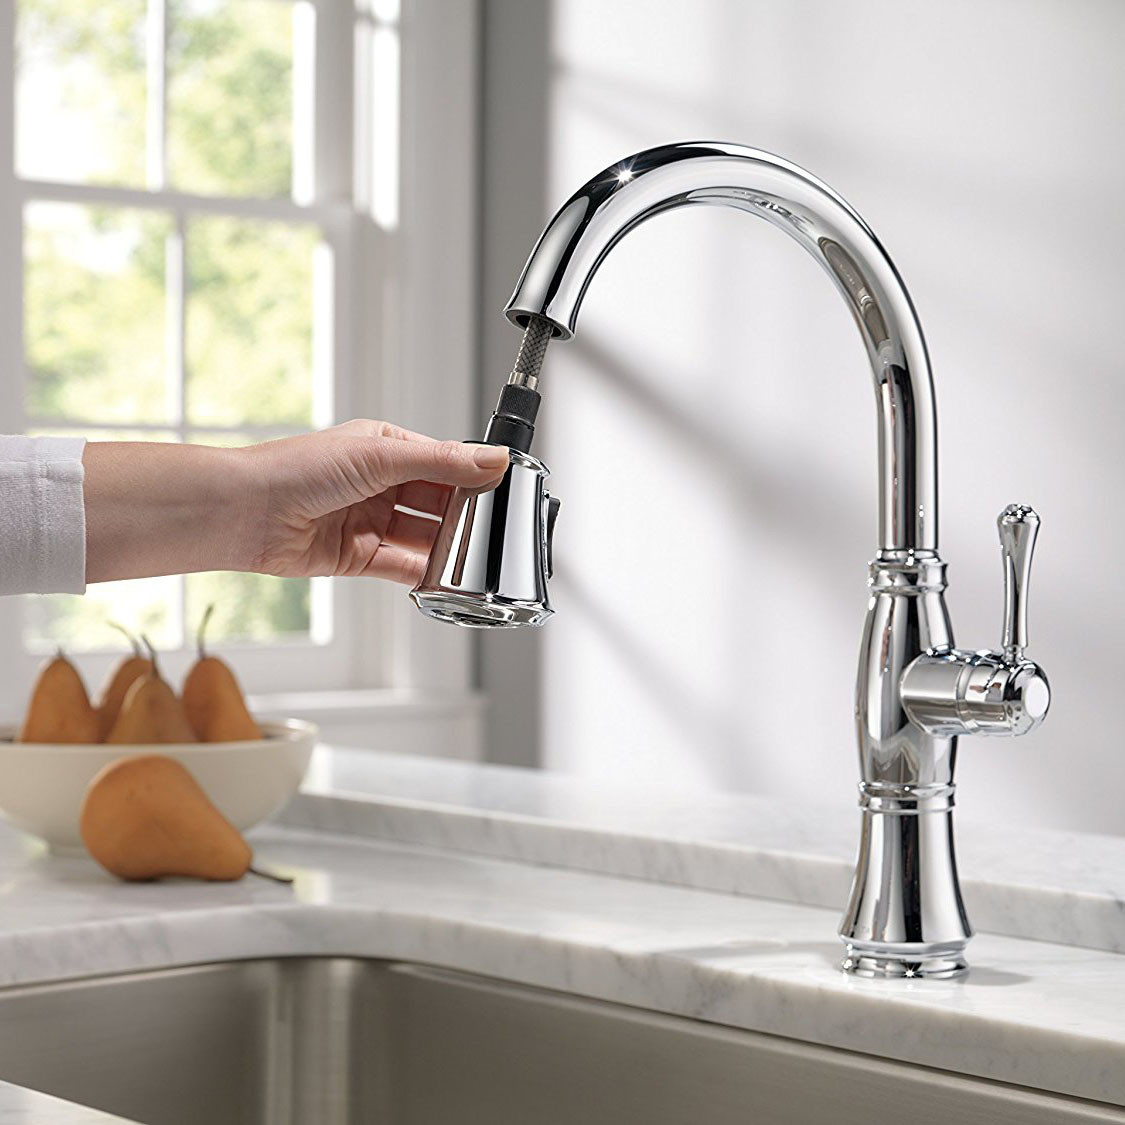 delta cassidy kitchen faucet with pull-down spray, available in